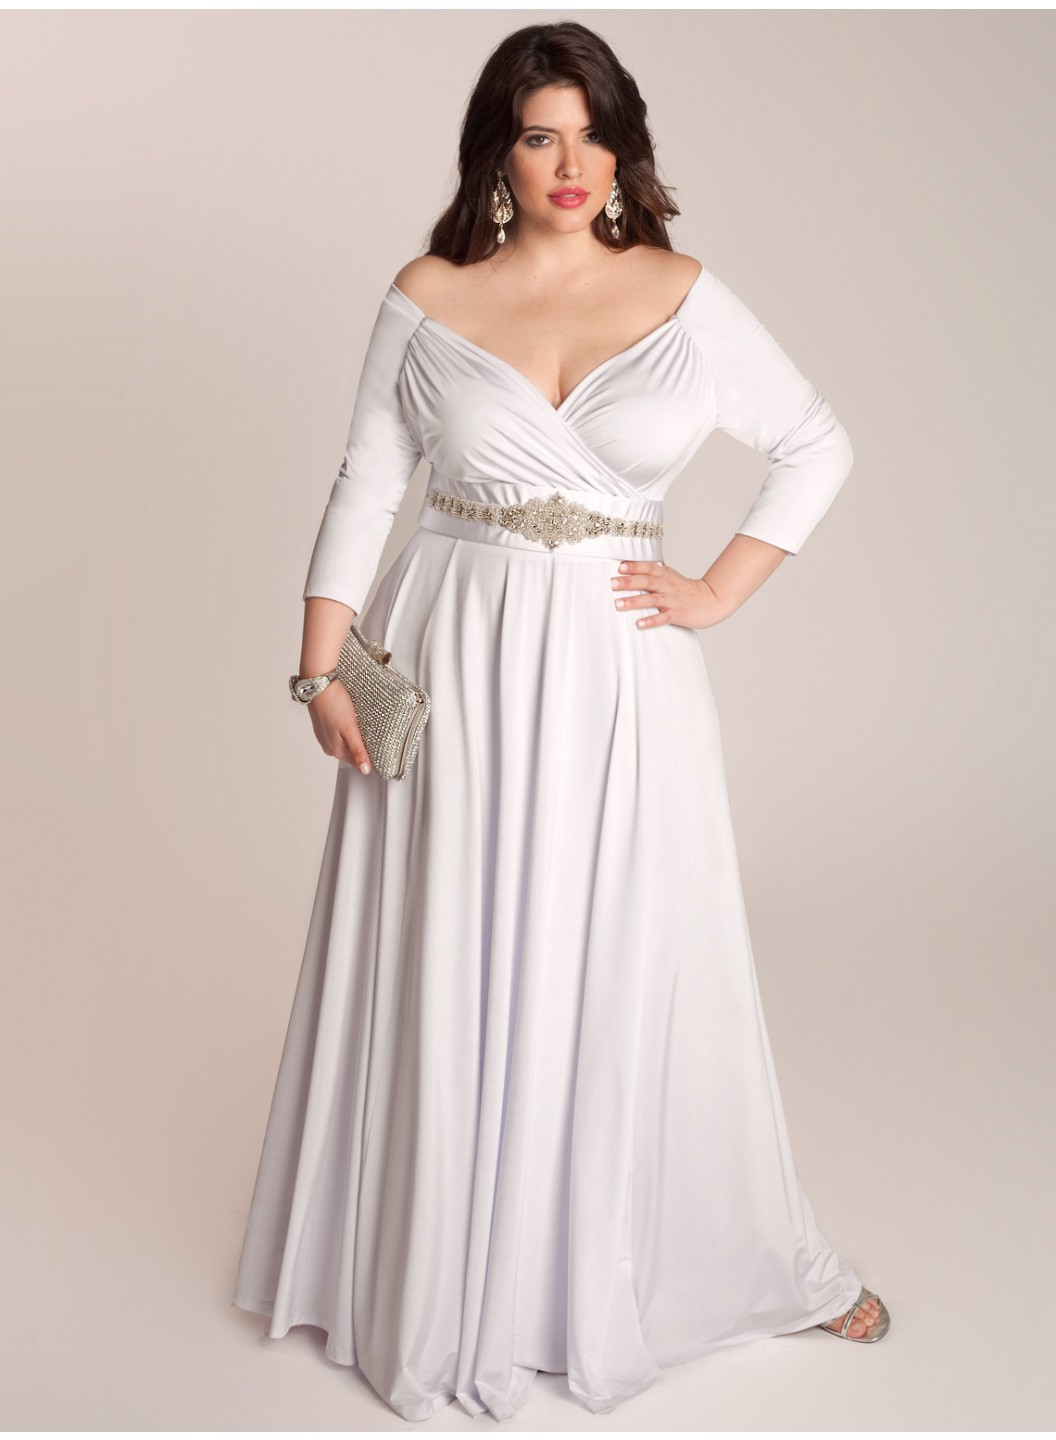 Plus size women christmas party dresses collection for for A pretty wedding dress